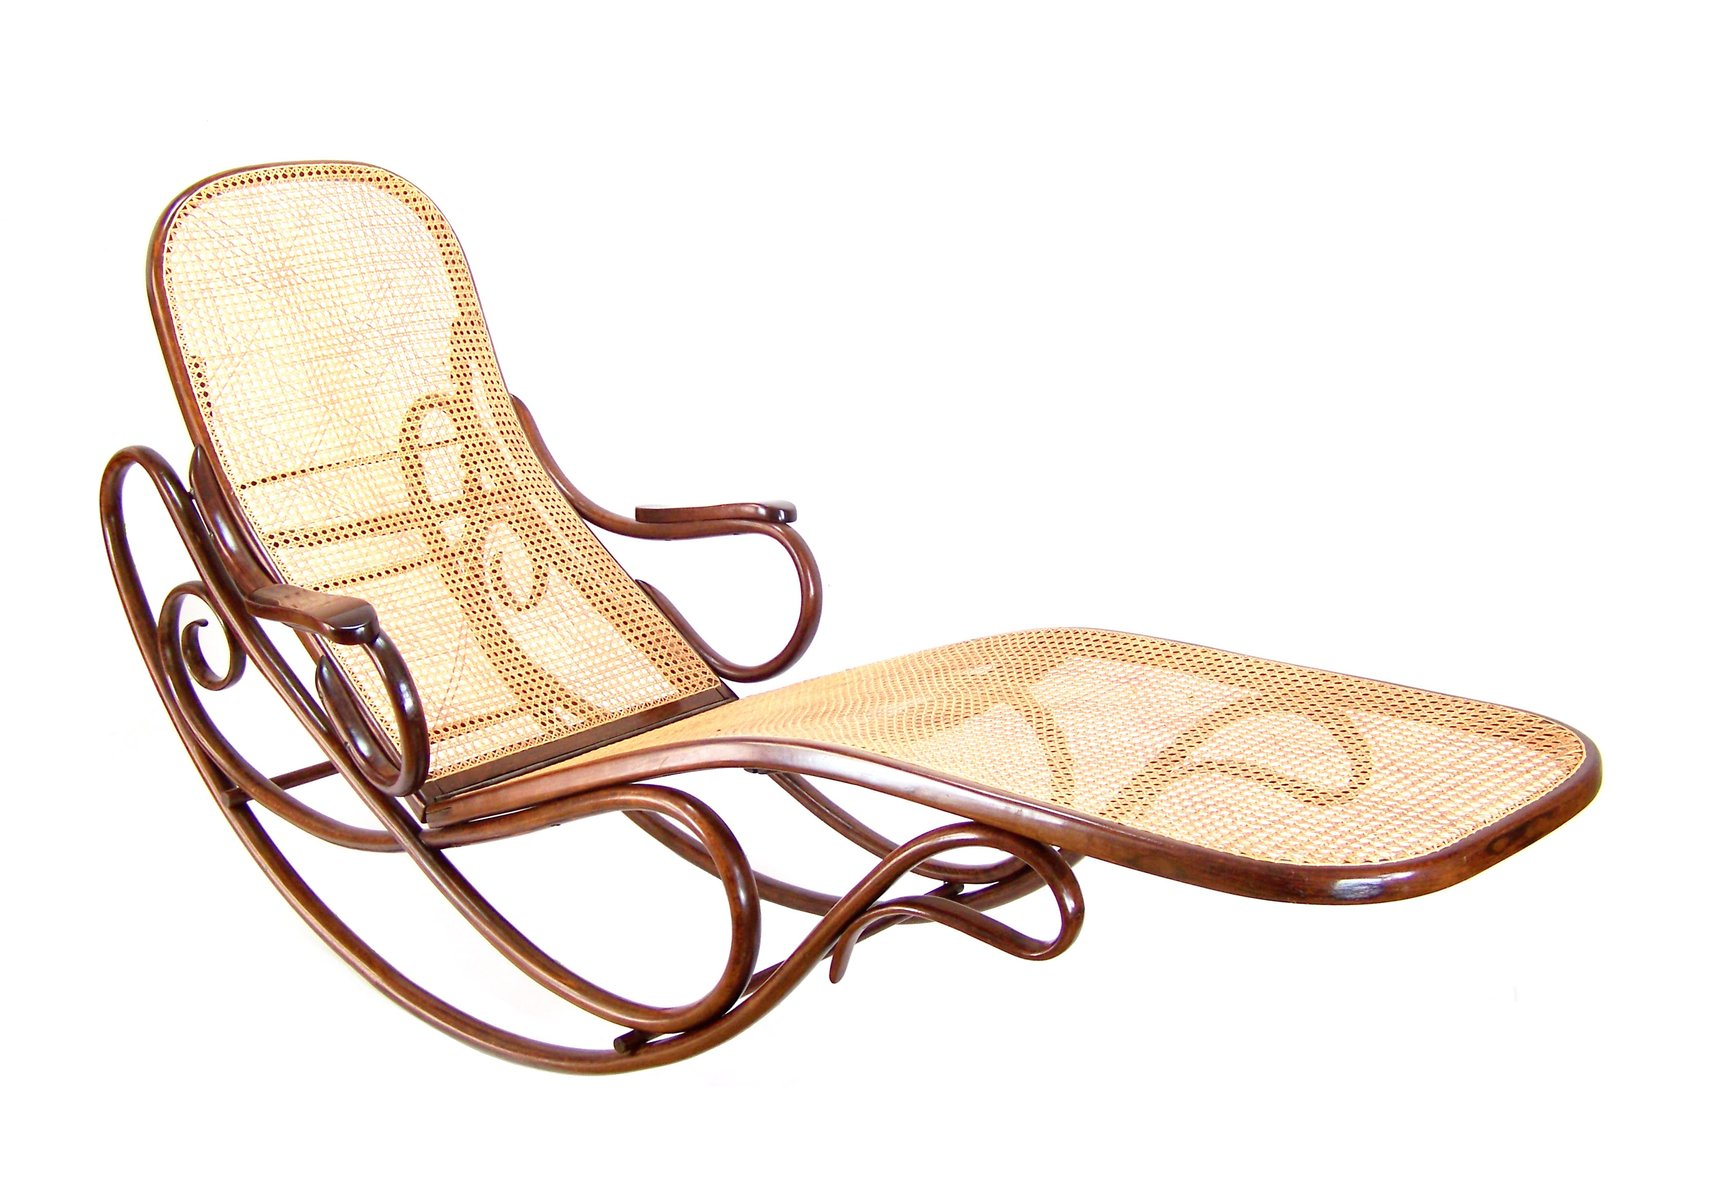 No 7500 rocking chaise longue from gebr der thonet 1880s for Chaise longue company